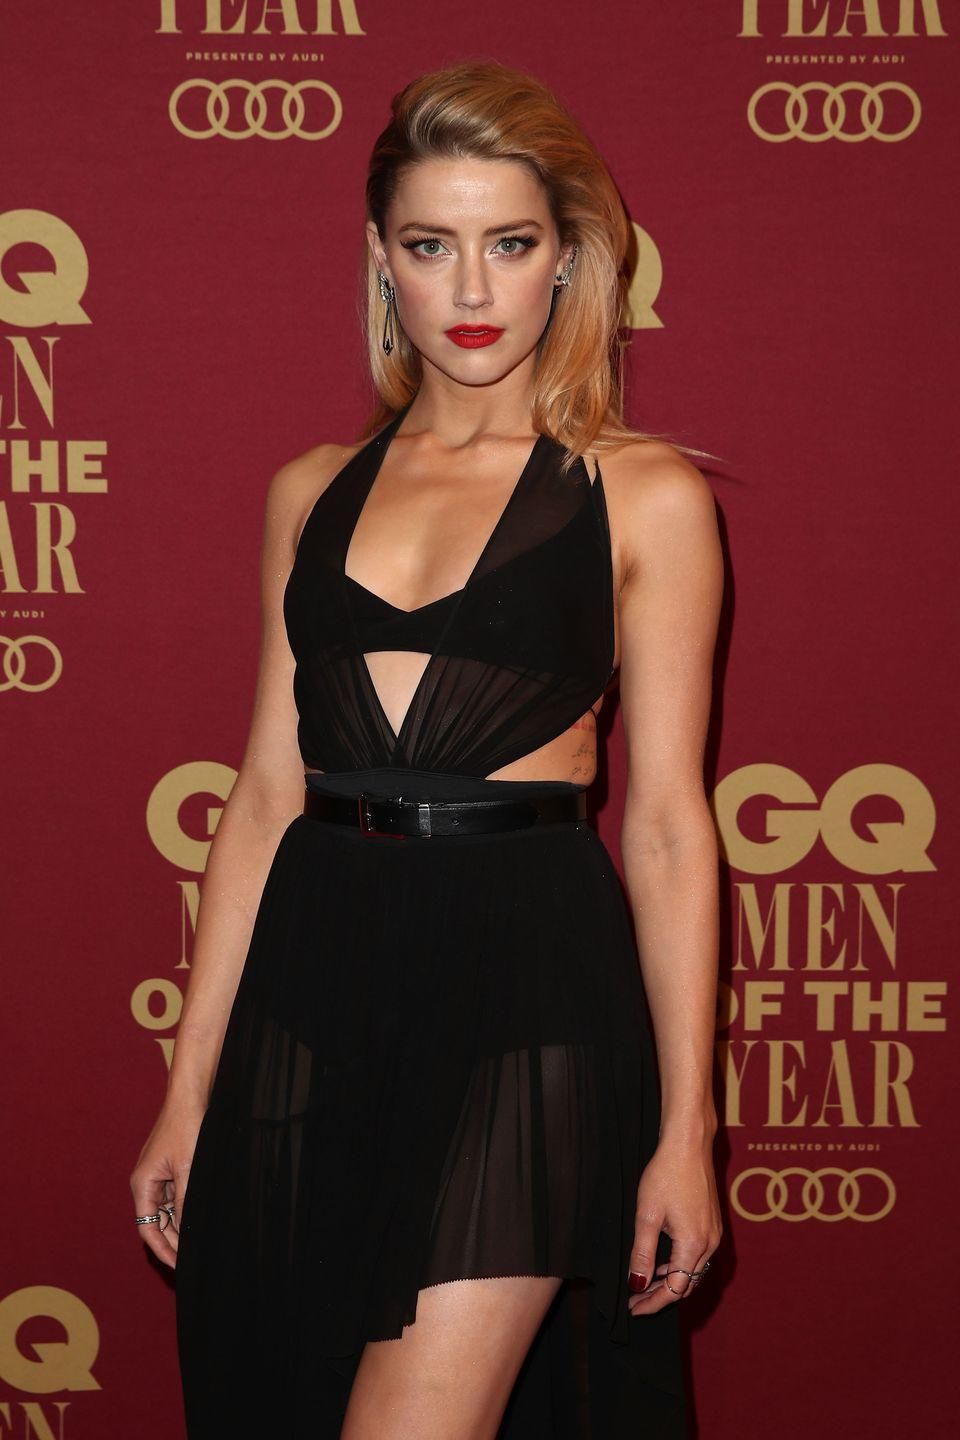 "<p>Amber starred in <em>Aquaman</em> and she looked hot. The actress trained like an athlete for multiple hours a day, trainer Gunnar Peterson told <em><a href=""https://people.com/bodies/amber-heard-aquaman-trained-multiple-hours-a-day/"" rel=""nofollow noopener"" target=""_blank"" data-ylk=""slk:PEOPLE"" class=""link rapid-noclick-resp"">PEOPLE</a></em>. He says workouts included everything from squat presses to sled work to resistance training. </p>"